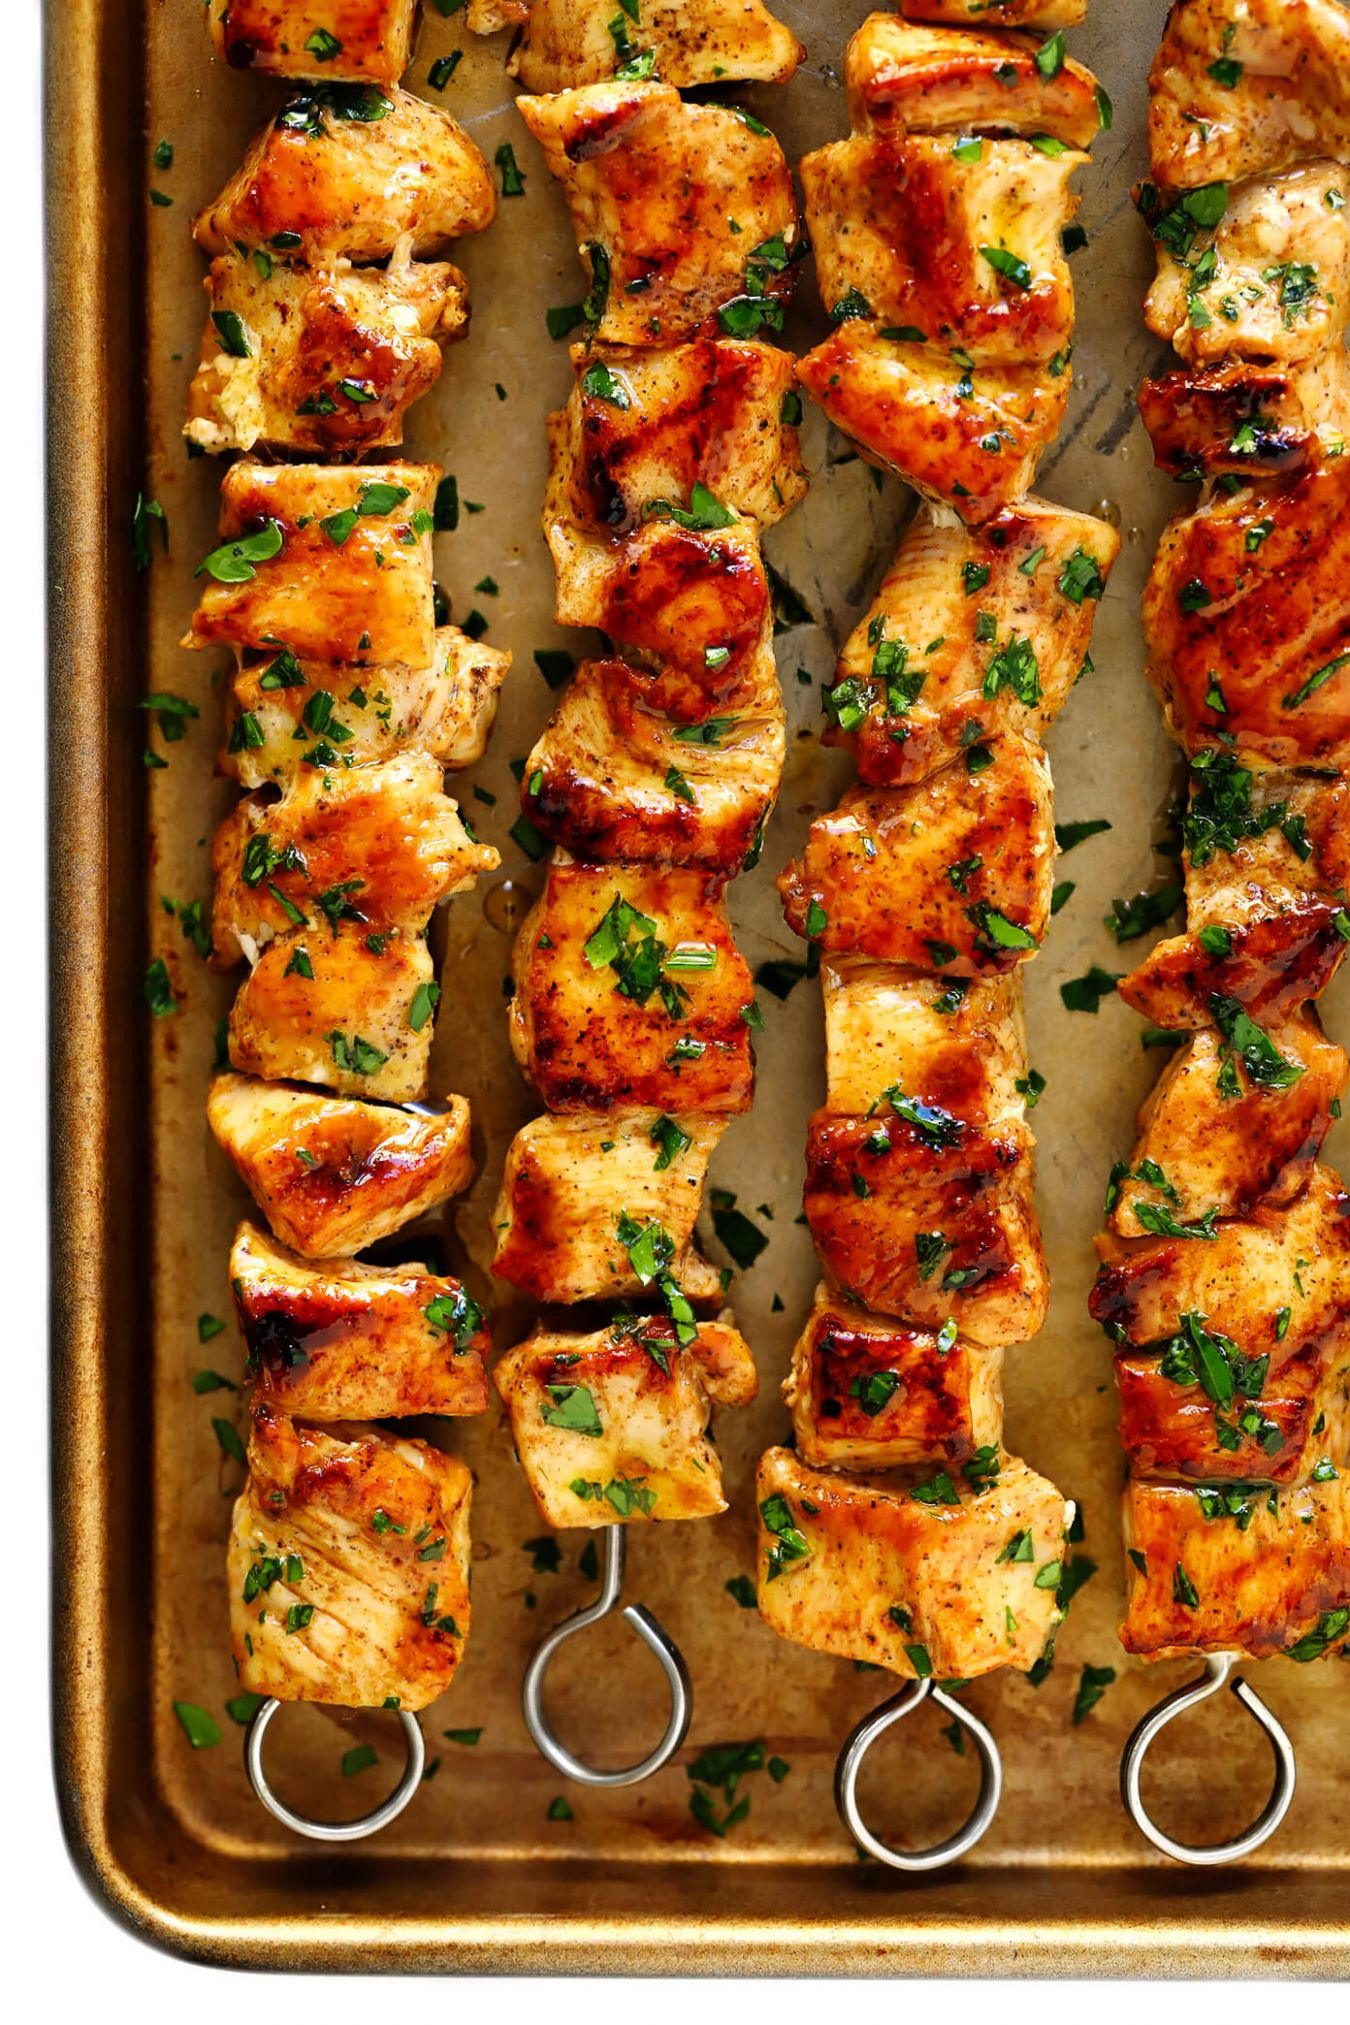 The Juiciest Grilled Chicken Kabobs - Recipes Chicken On The Grill